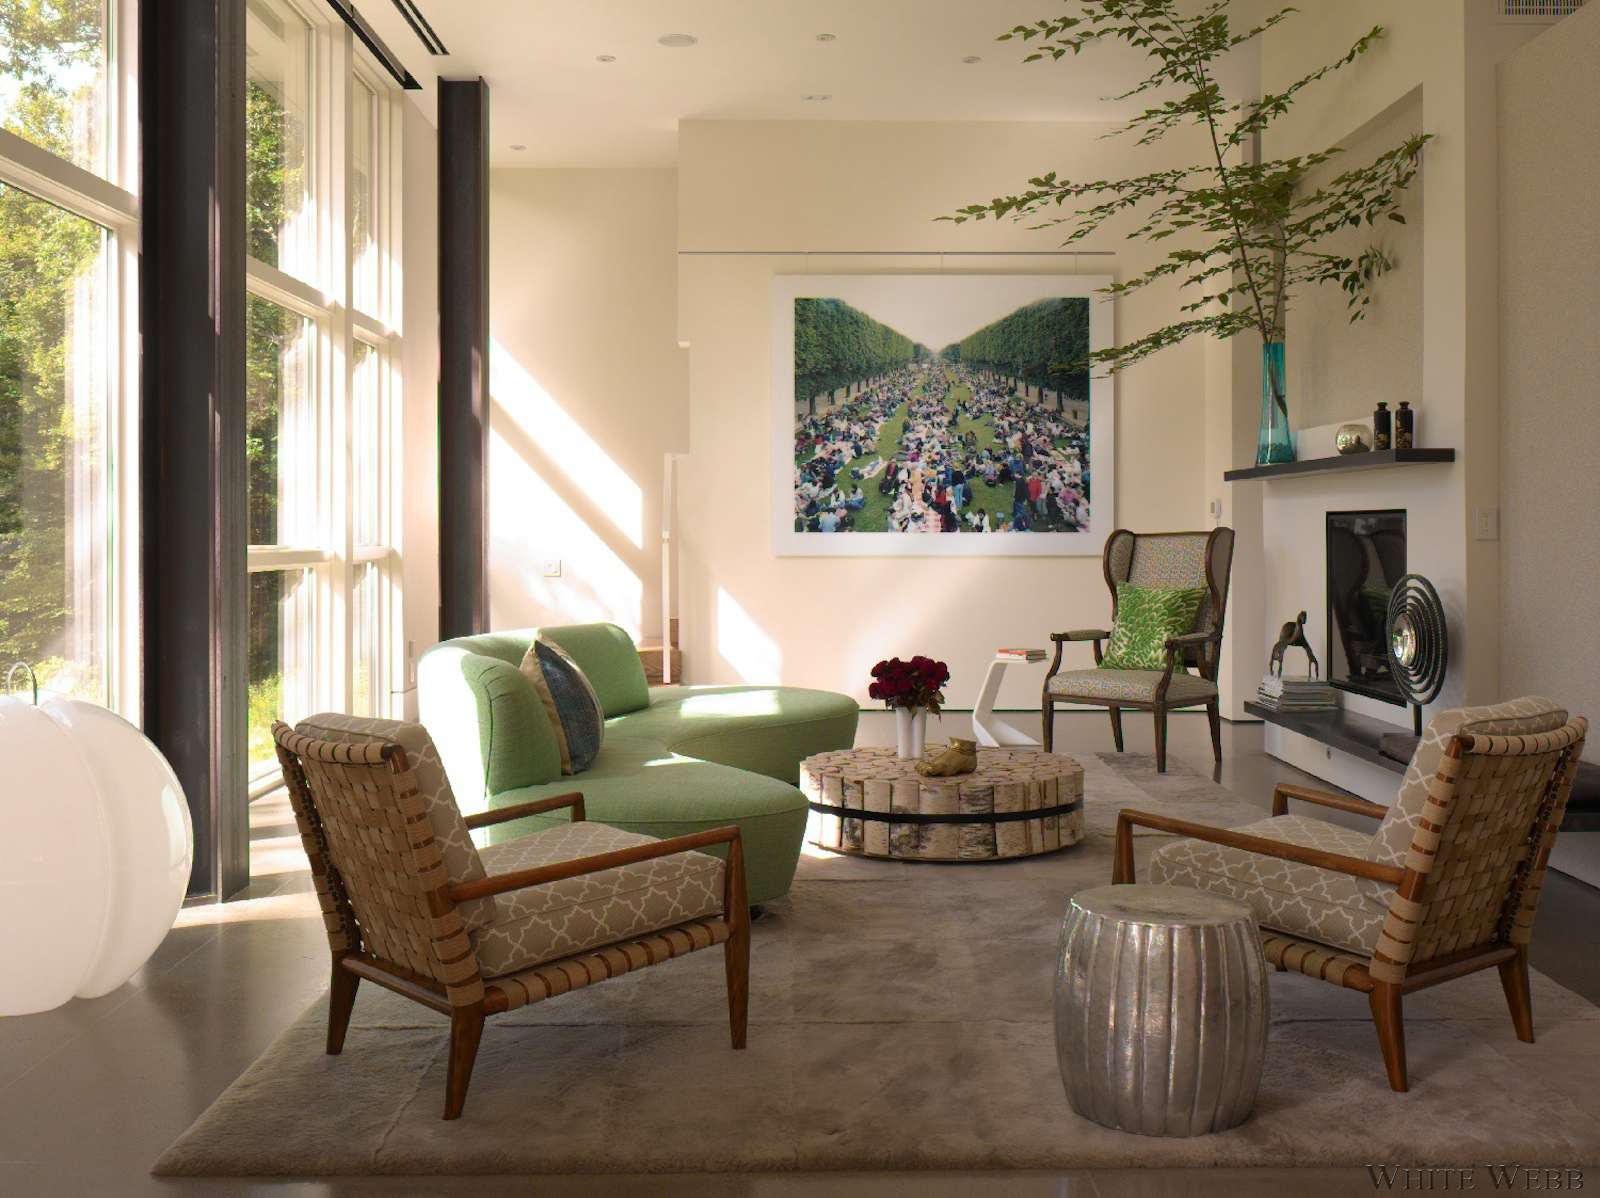 Modern Country House Living Room by White Webb